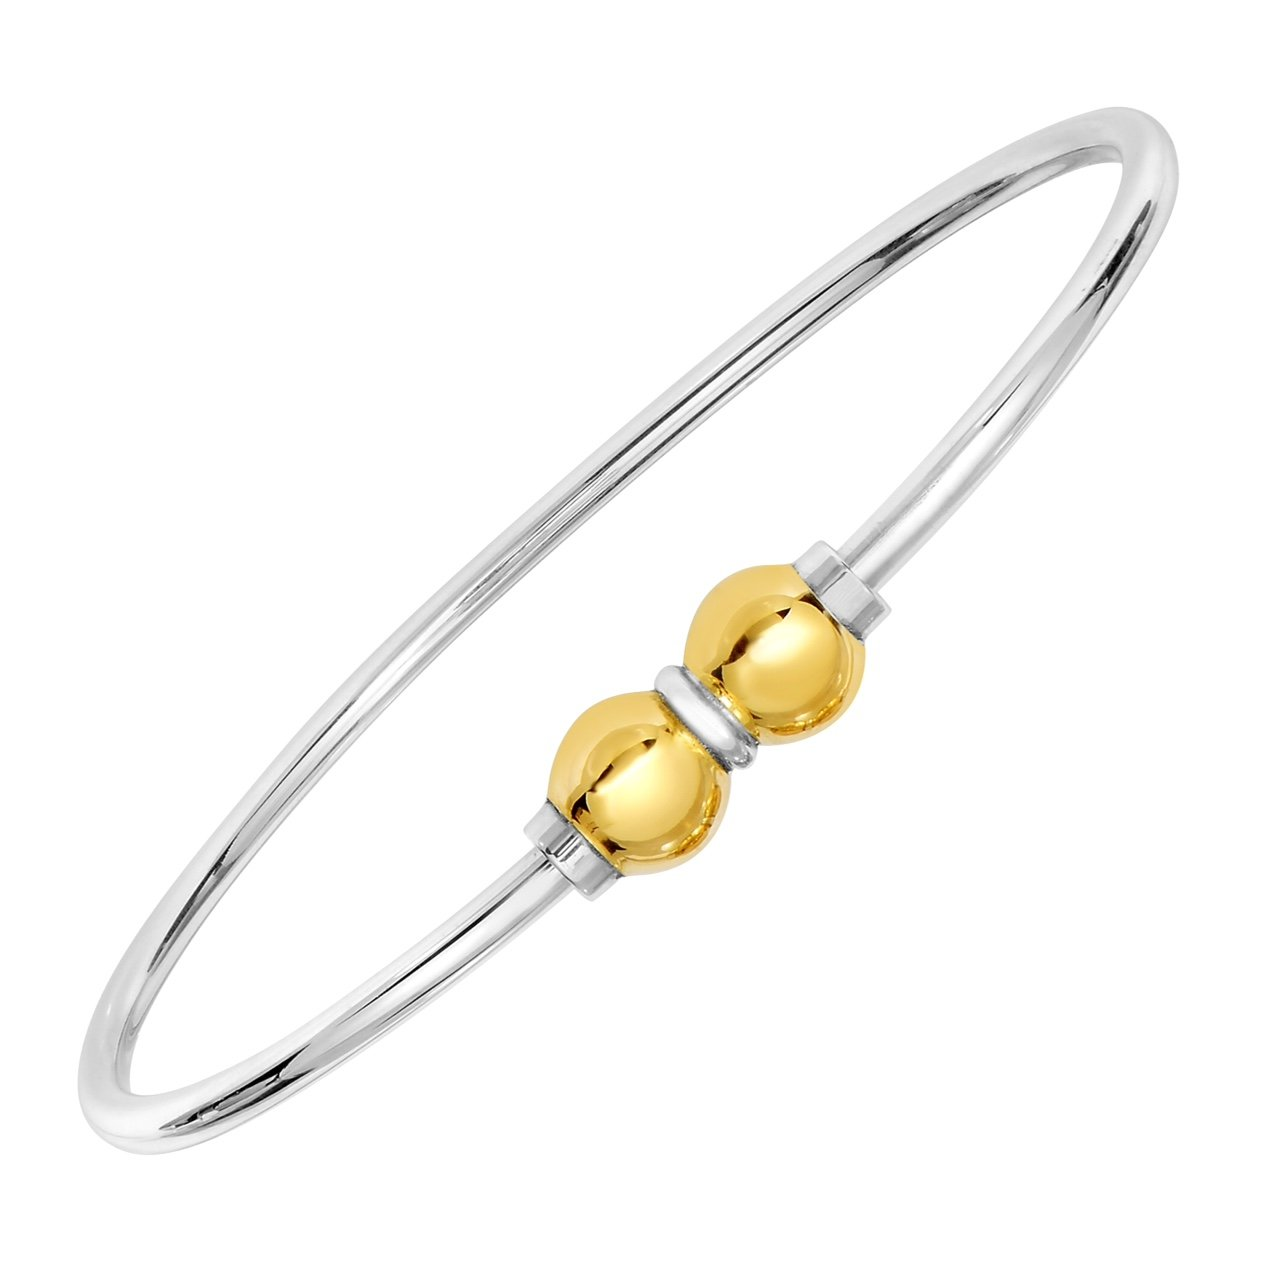 Unique royal jewelry 925 Sterling Silver 14k Gold Double Ball Bracelet Size 7